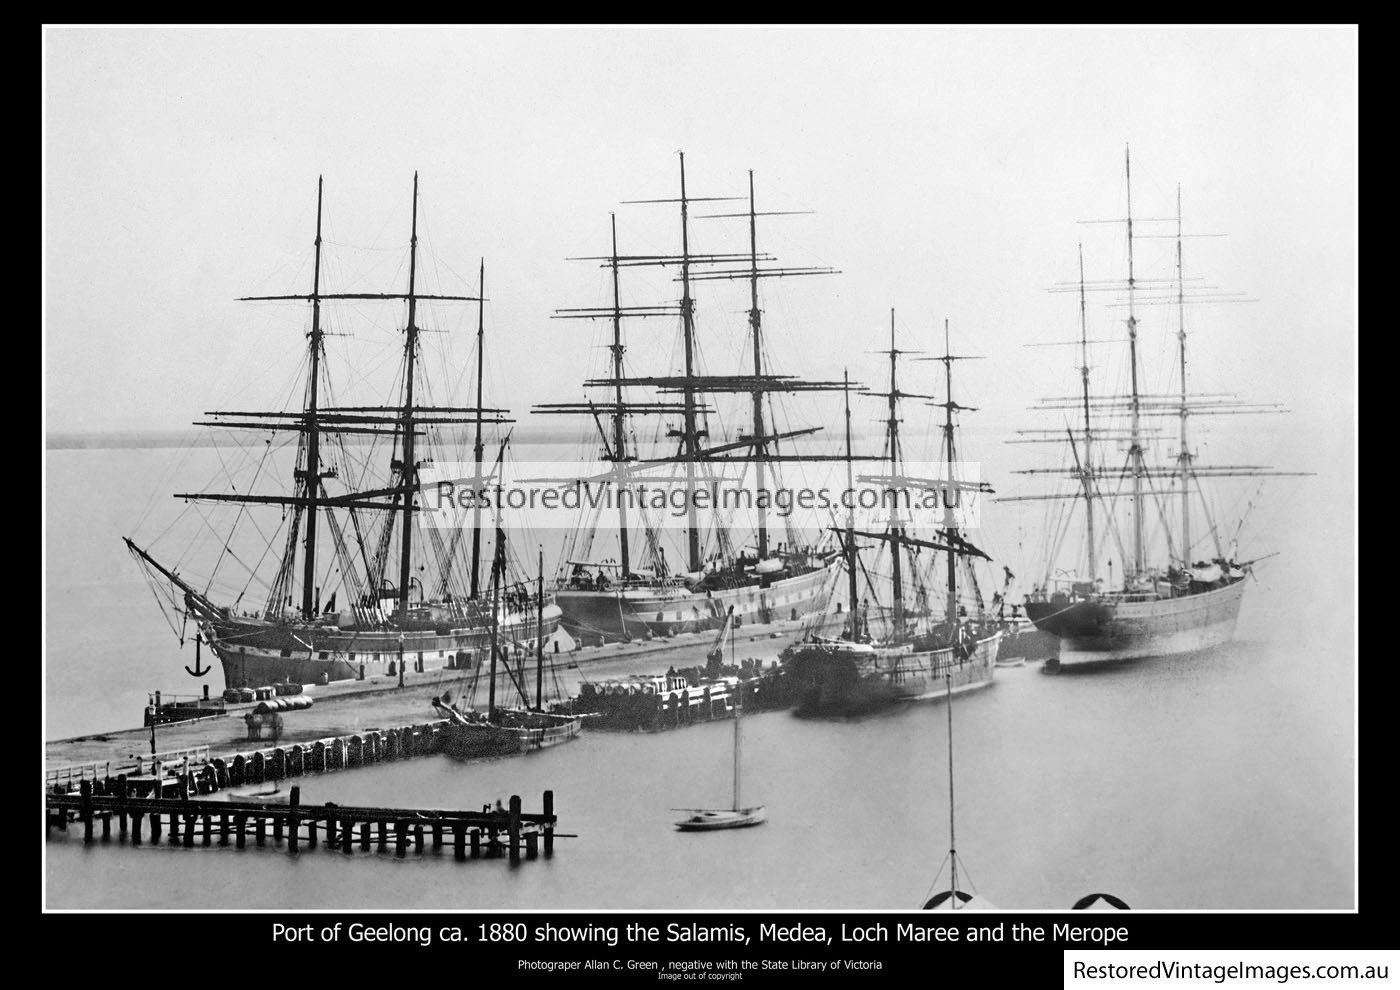 Port Of Geelong About 1880